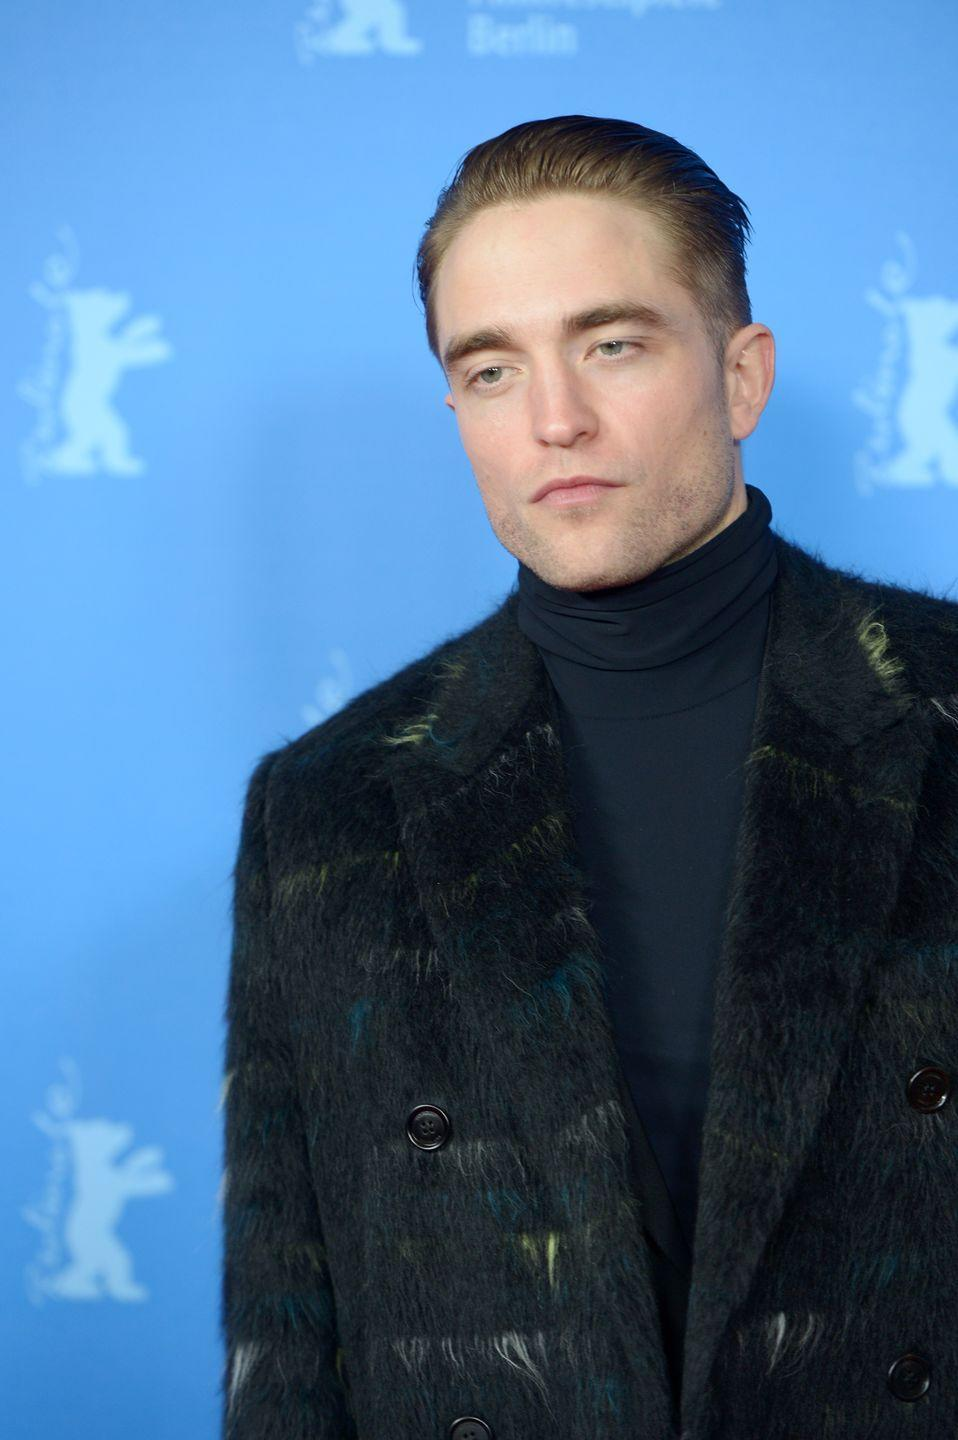 """<p>Polished hairstyles used to be greasy, crispy, and all around stiff. But, alas! Hair products are much better now and you do not need a full head of hardened gel to make it so. </p><p>For this kind of Fancy Rob look, go for something that has a bit of hold and a bit of texture, like a pomade or a <a href=""""https://www.amazon.com/Co-Freeway-Defining-Spray-Gel/dp/B073RV3417?tag=syn-yahoo-20&ascsubtag=%5Bartid%7C2139.g.33898672%5Bsrc%7Cyahoo-us"""" rel=""""nofollow noopener"""" target=""""_blank"""" data-ylk=""""slk:spray gel"""" class=""""link rapid-noclick-resp"""">spray gel</a> (which gives you much more control than a standard gel). To finish off any style, DeZarate recommends a <a href=""""https://www.amazon.com/ORIBE-Dry-Texturizing-Spray-8-5/dp/B003NXM9HS?tag=syn-yahoo-20&ascsubtag=%5Bartid%7C2139.g.33898672%5Bsrc%7Cyahoo-us"""" rel=""""nofollow noopener"""" target=""""_blank"""" data-ylk=""""slk:good texture spray"""" class=""""link rapid-noclick-resp"""">good texture spray</a>. This will keep your hair contained without the crunch. </p>"""